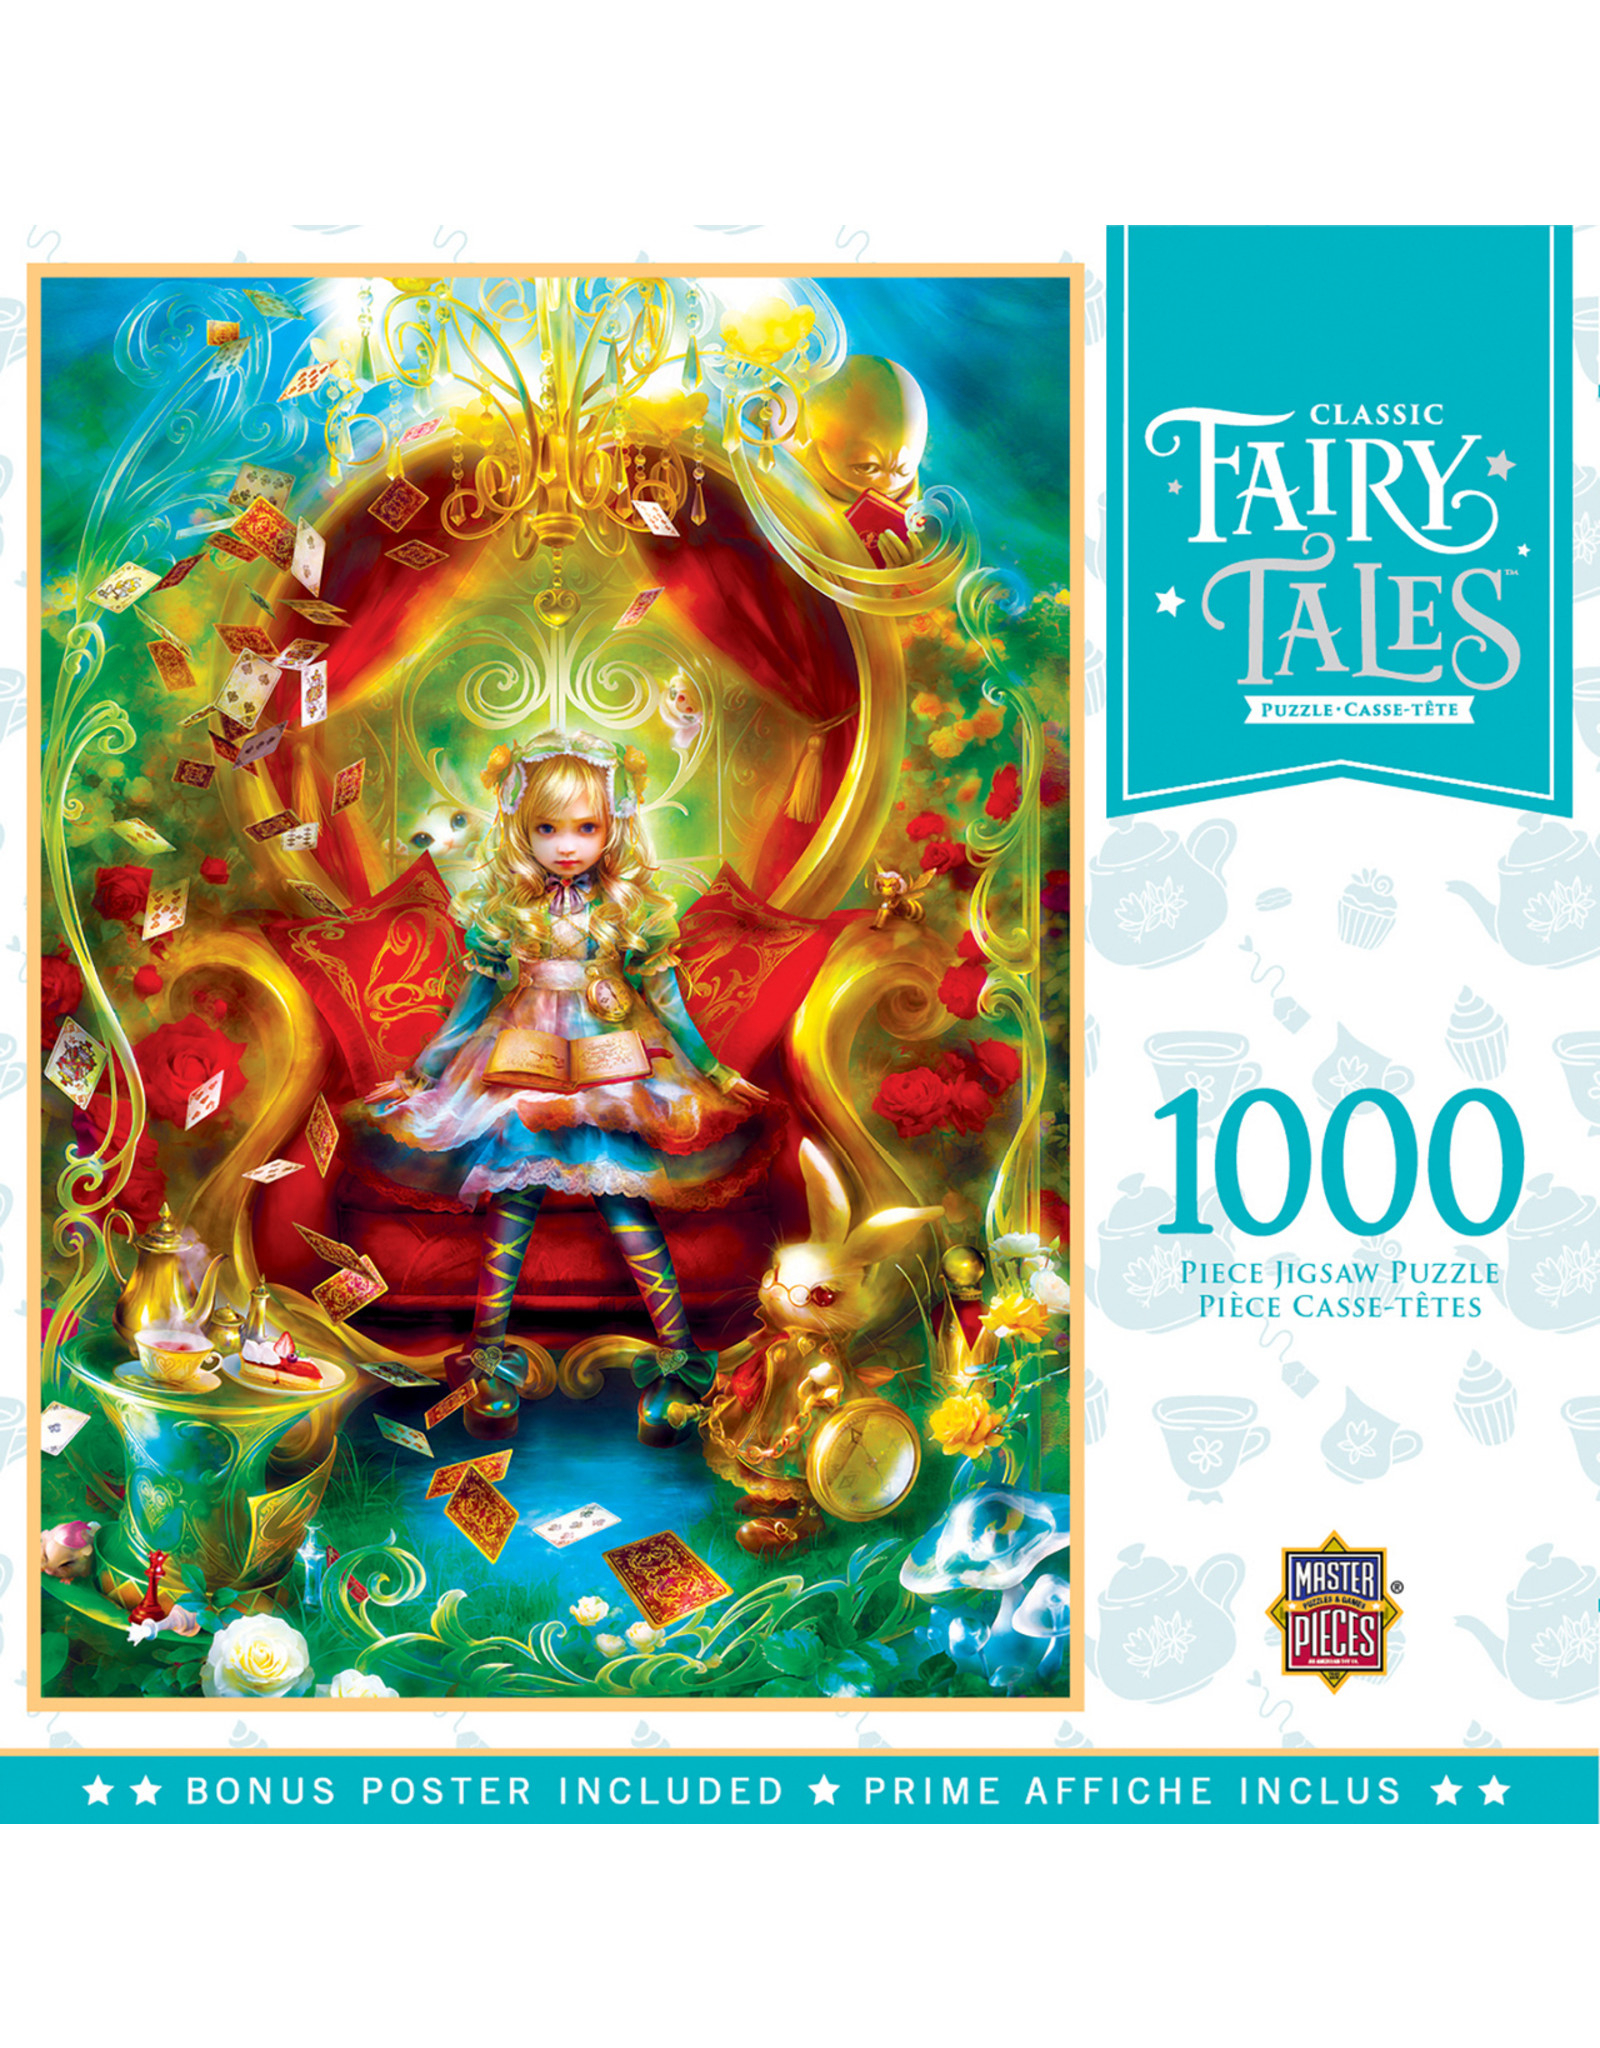 CLASSIC FAIRY TALES TEA PARTY TIME 1000 PIECE PUZZLE